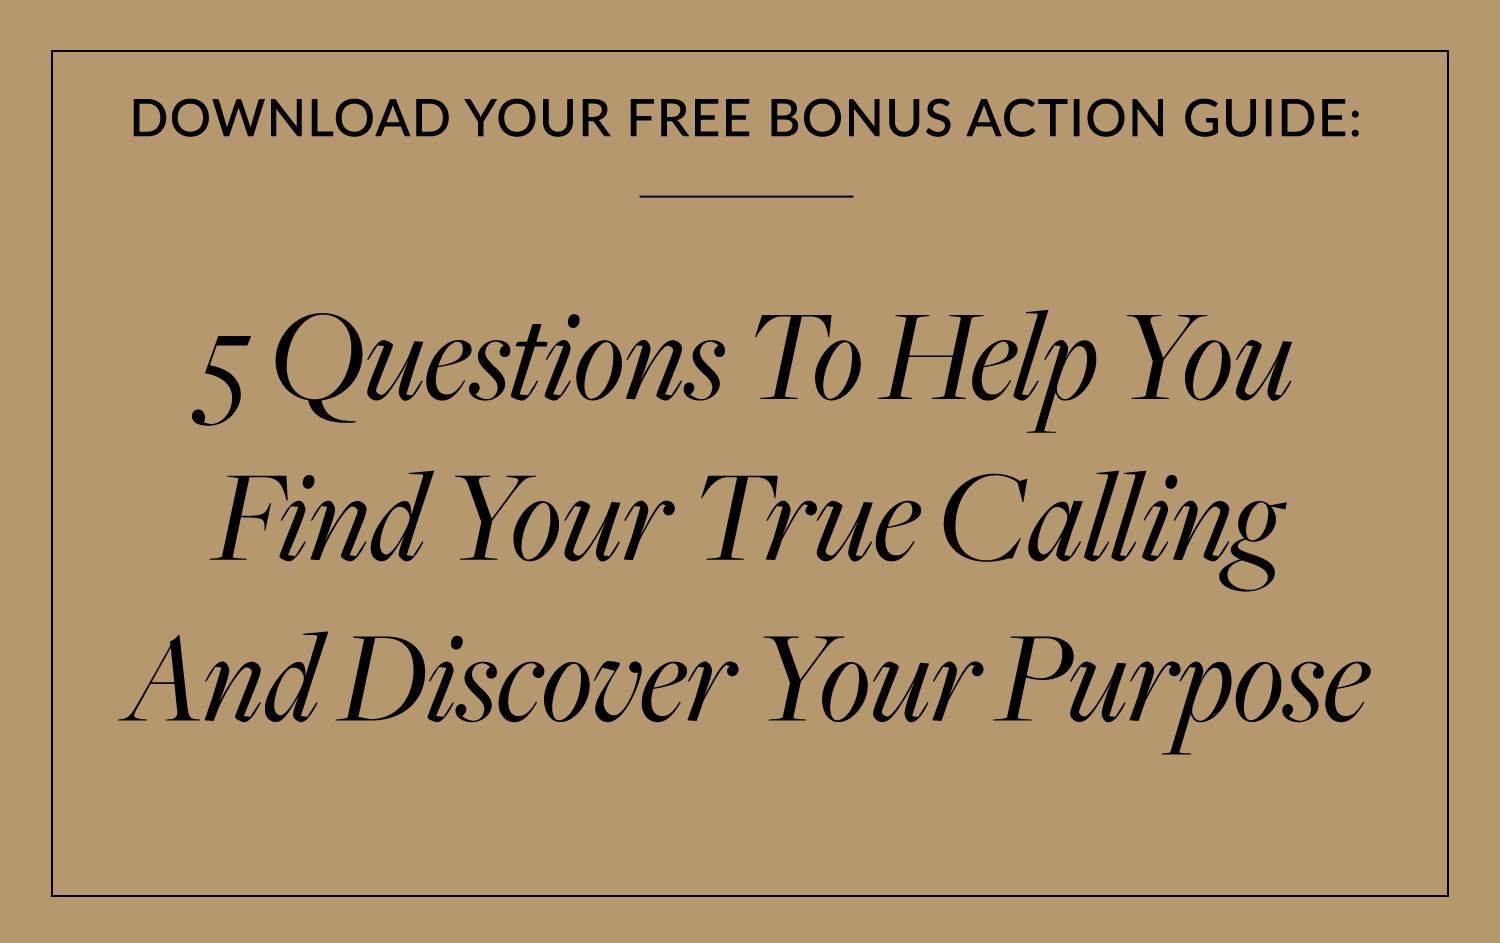 5 Questions To Help You Find Your True Calling And Discover Your Purpose